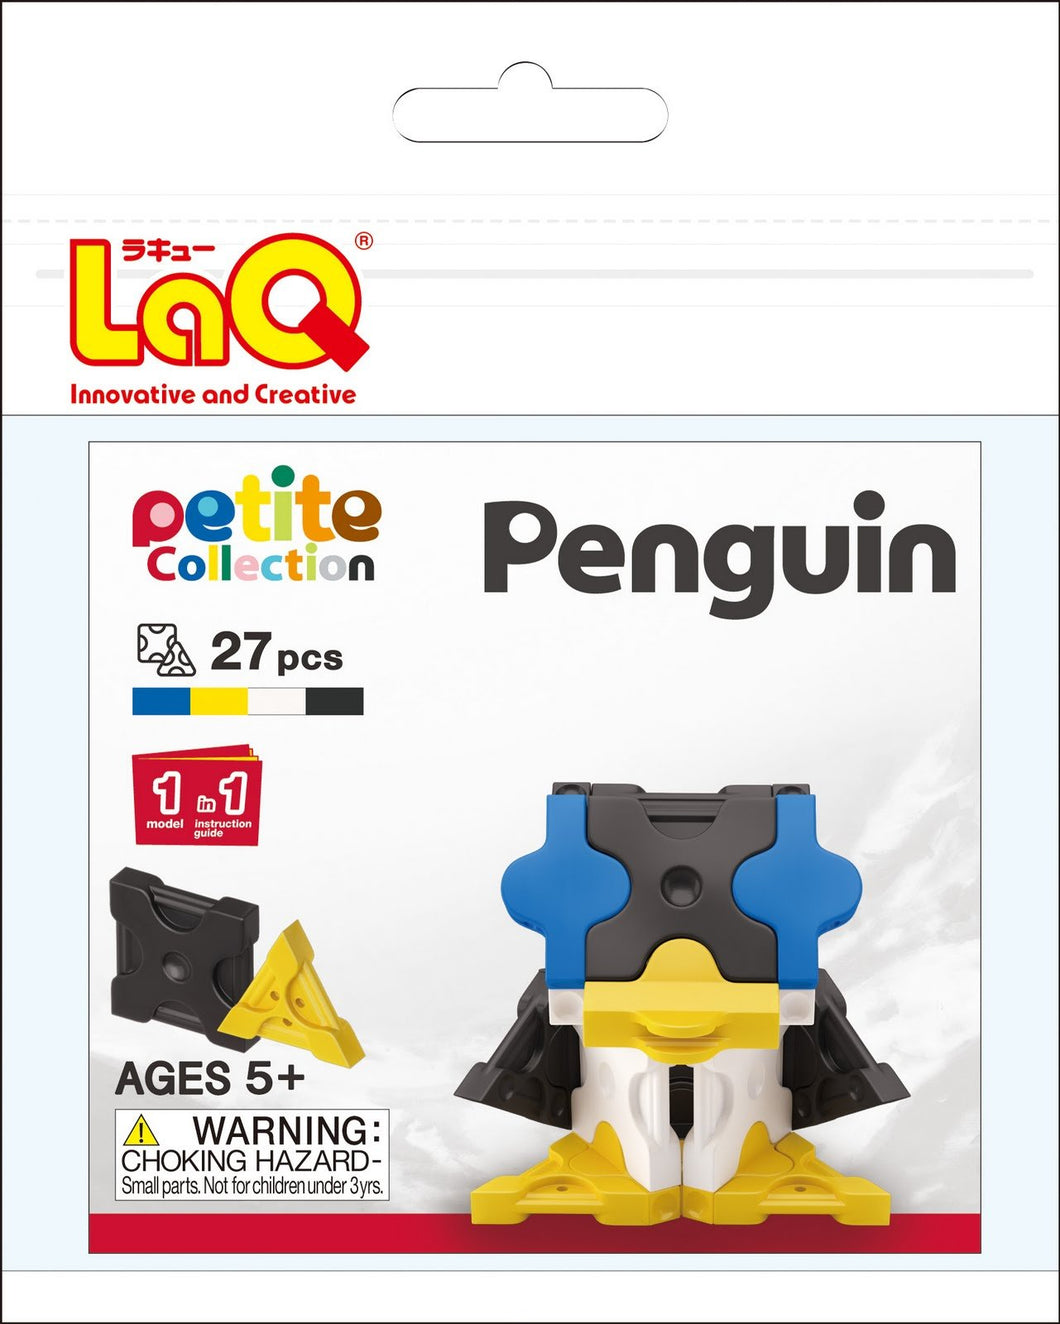 Penguin set package featured in the LaQ petite set